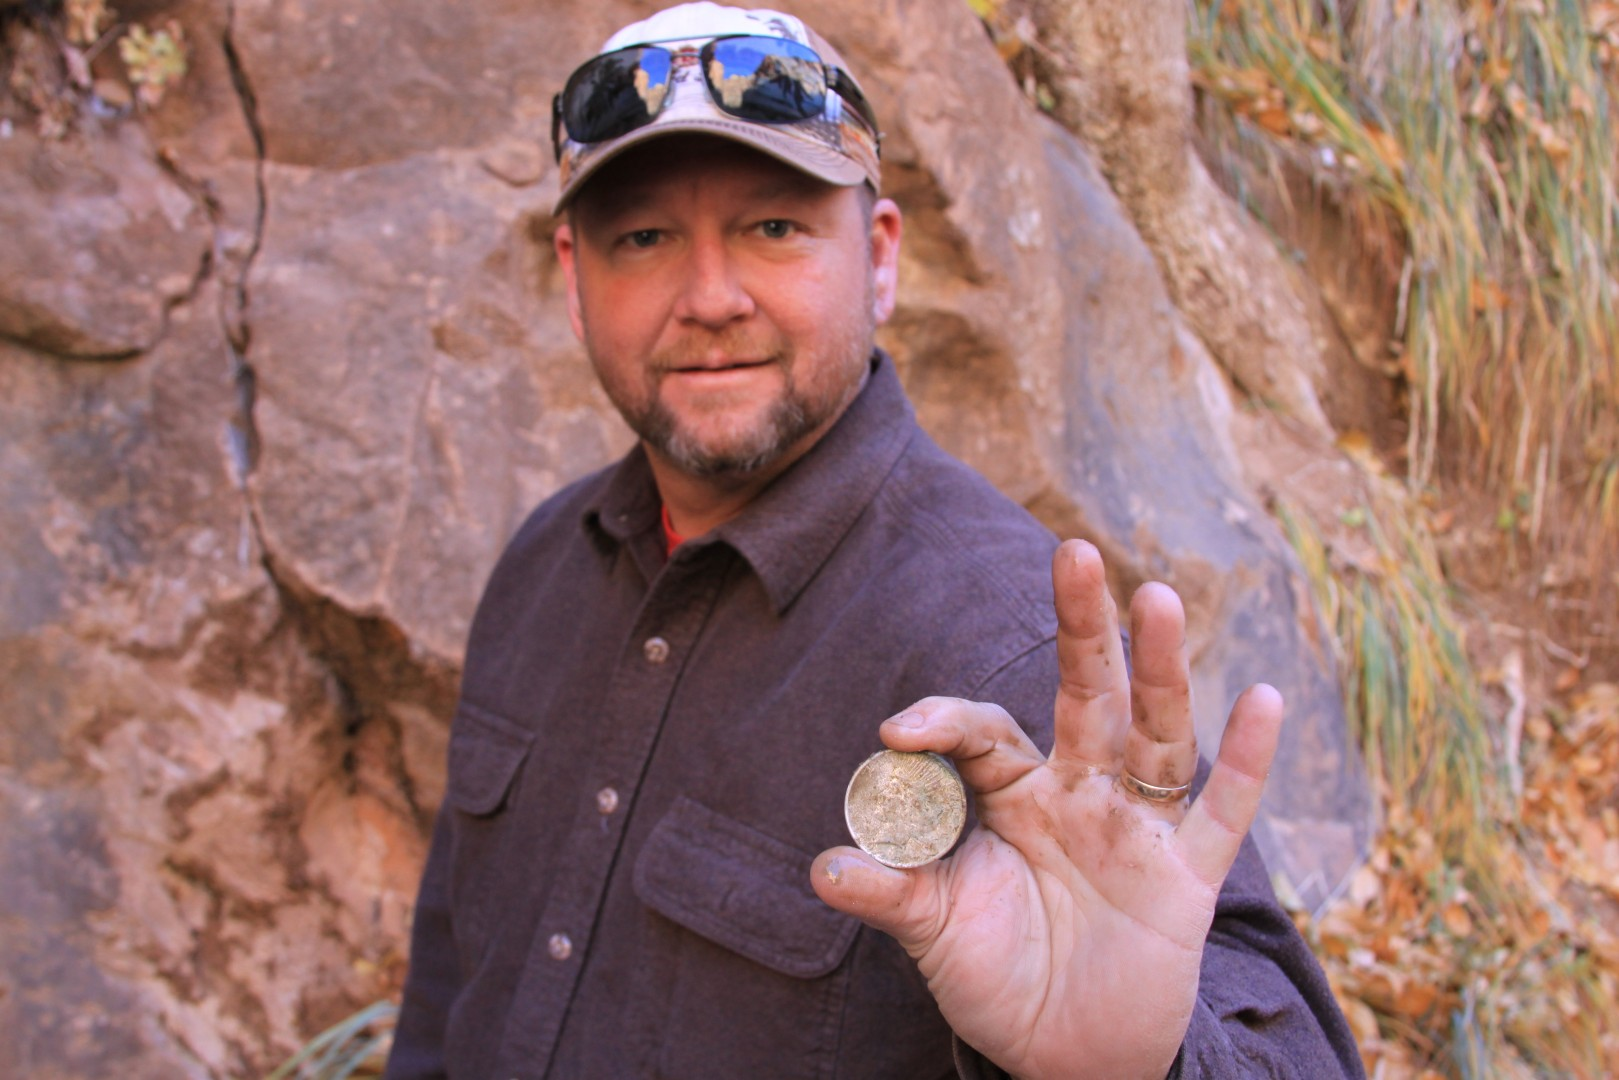 Visitor to Zion National Park finds a US Silver (Peace) dollar dated 1923 in a crevasse in the rocks in The Narrows Nov. 24 2012